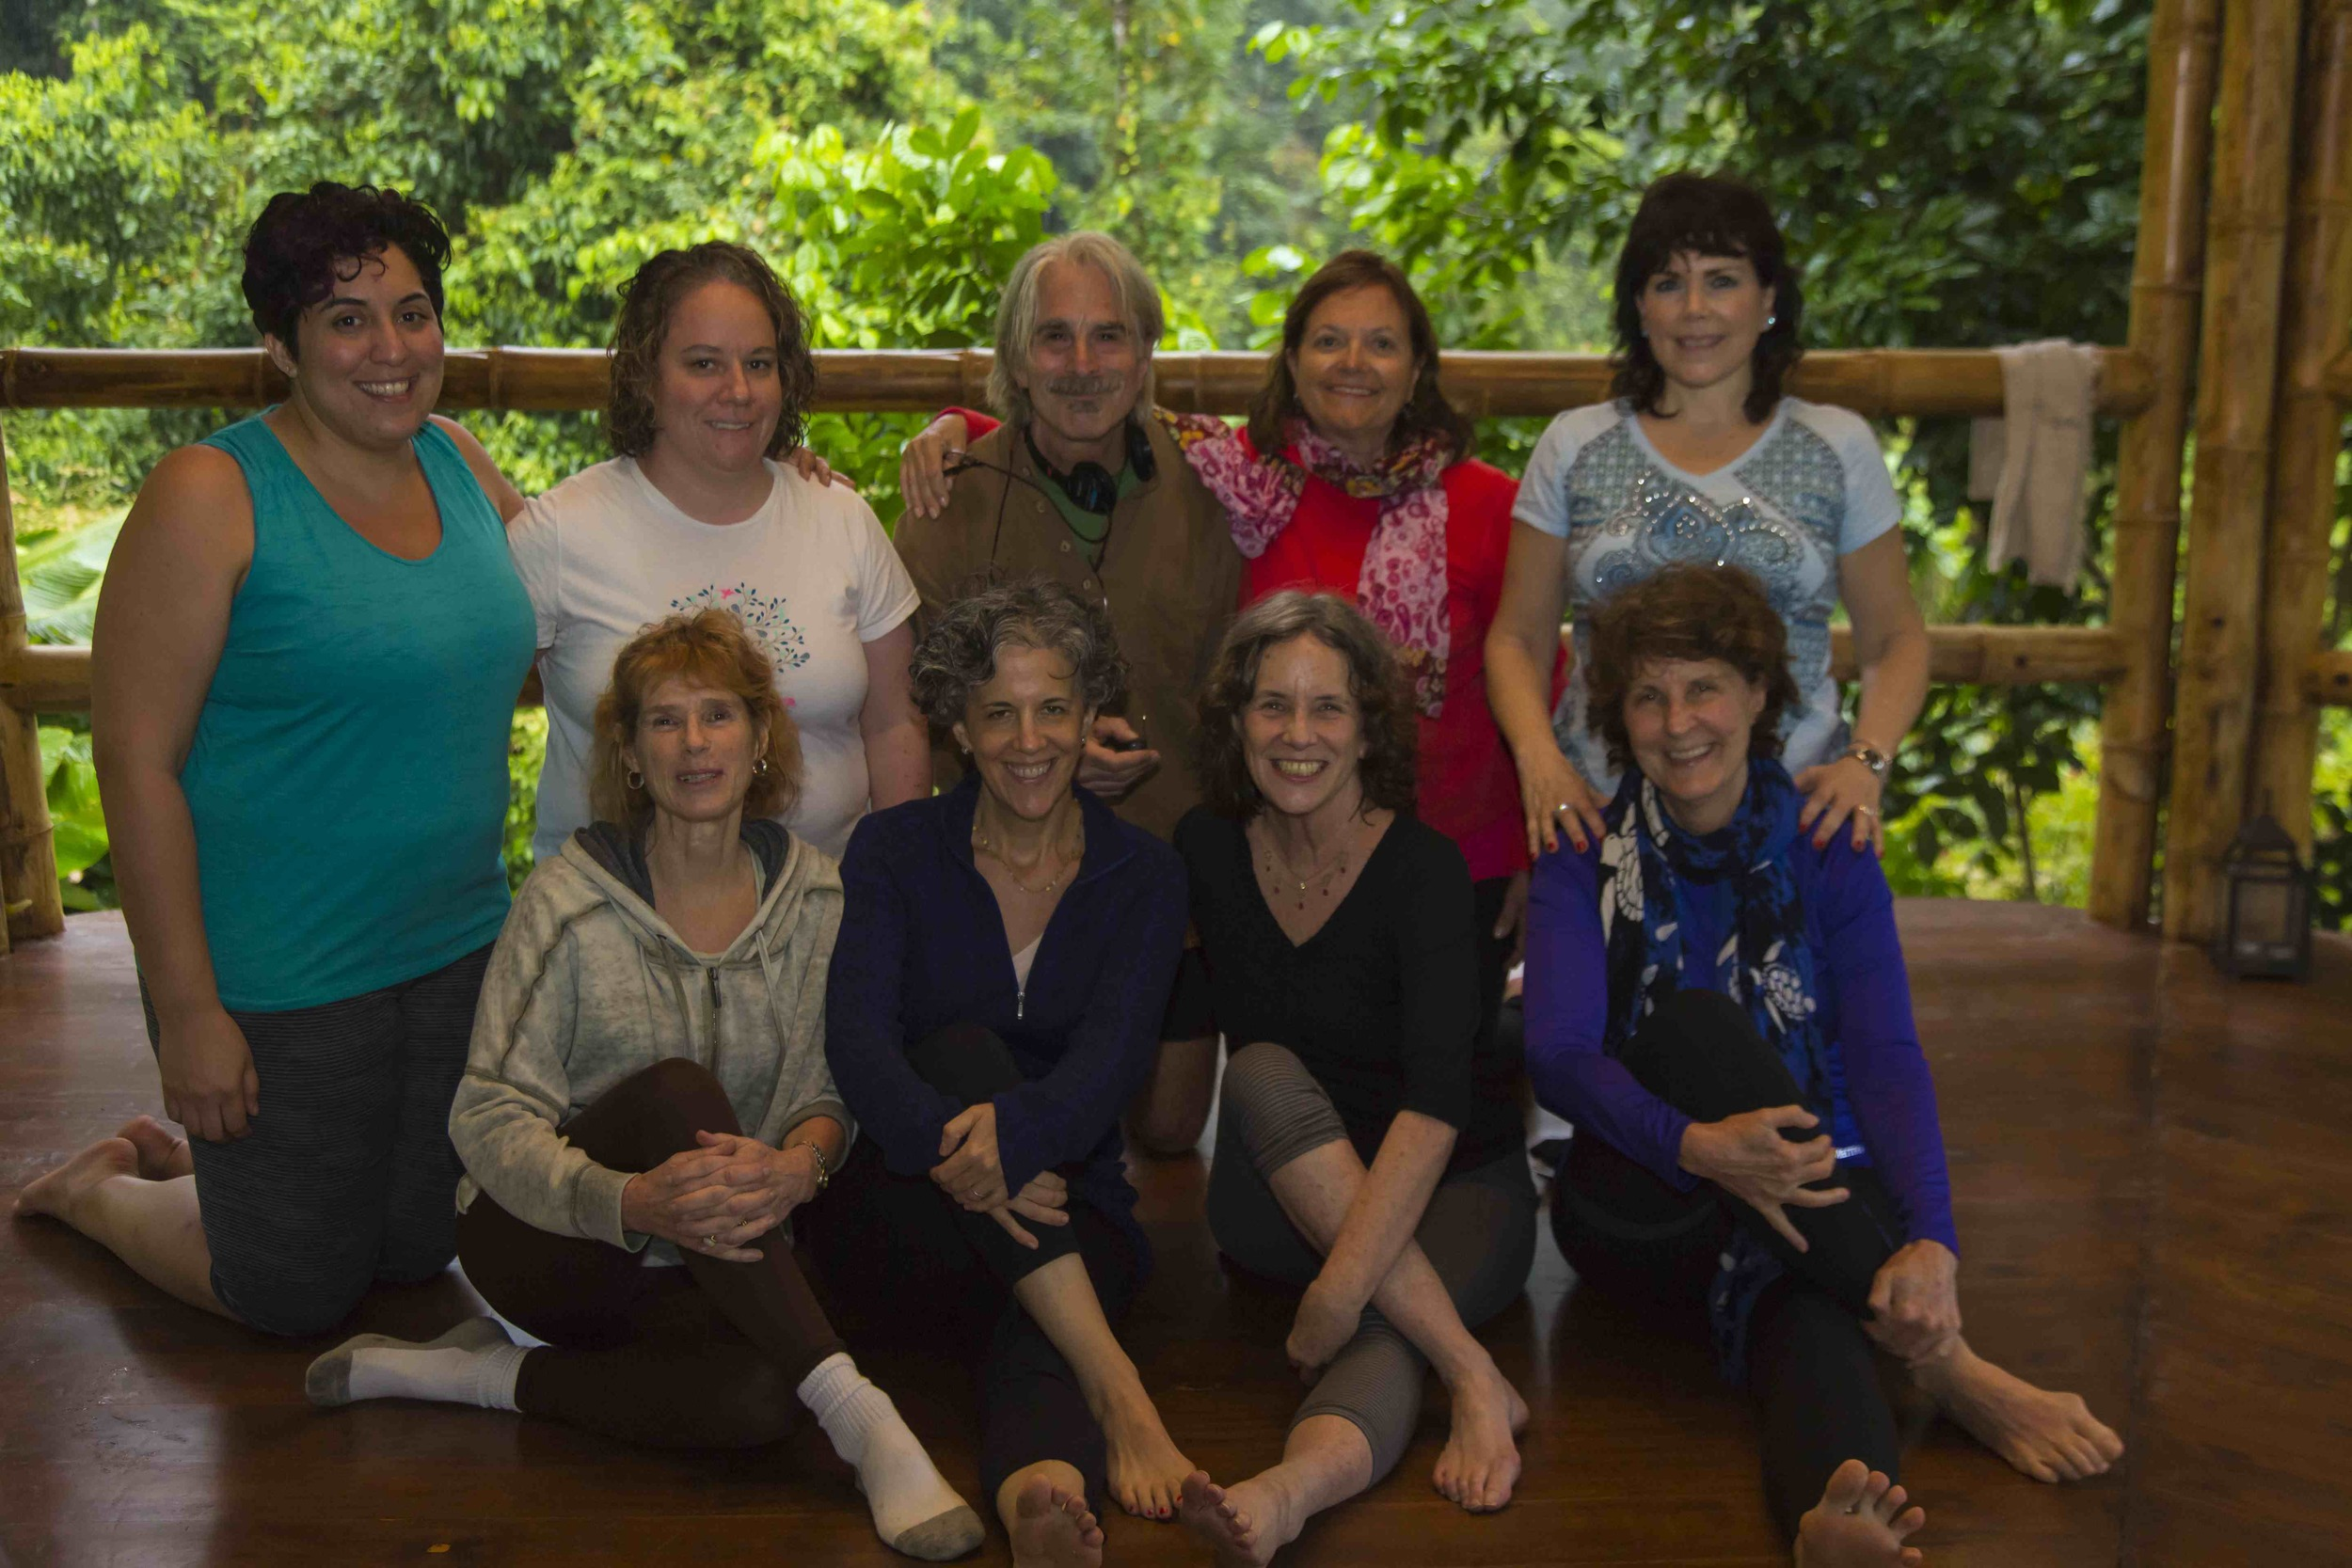 Susan and Linda (second and third from the left) with some of the fabulous students at the 2014 Restore, Refresh, Sustain retreat.